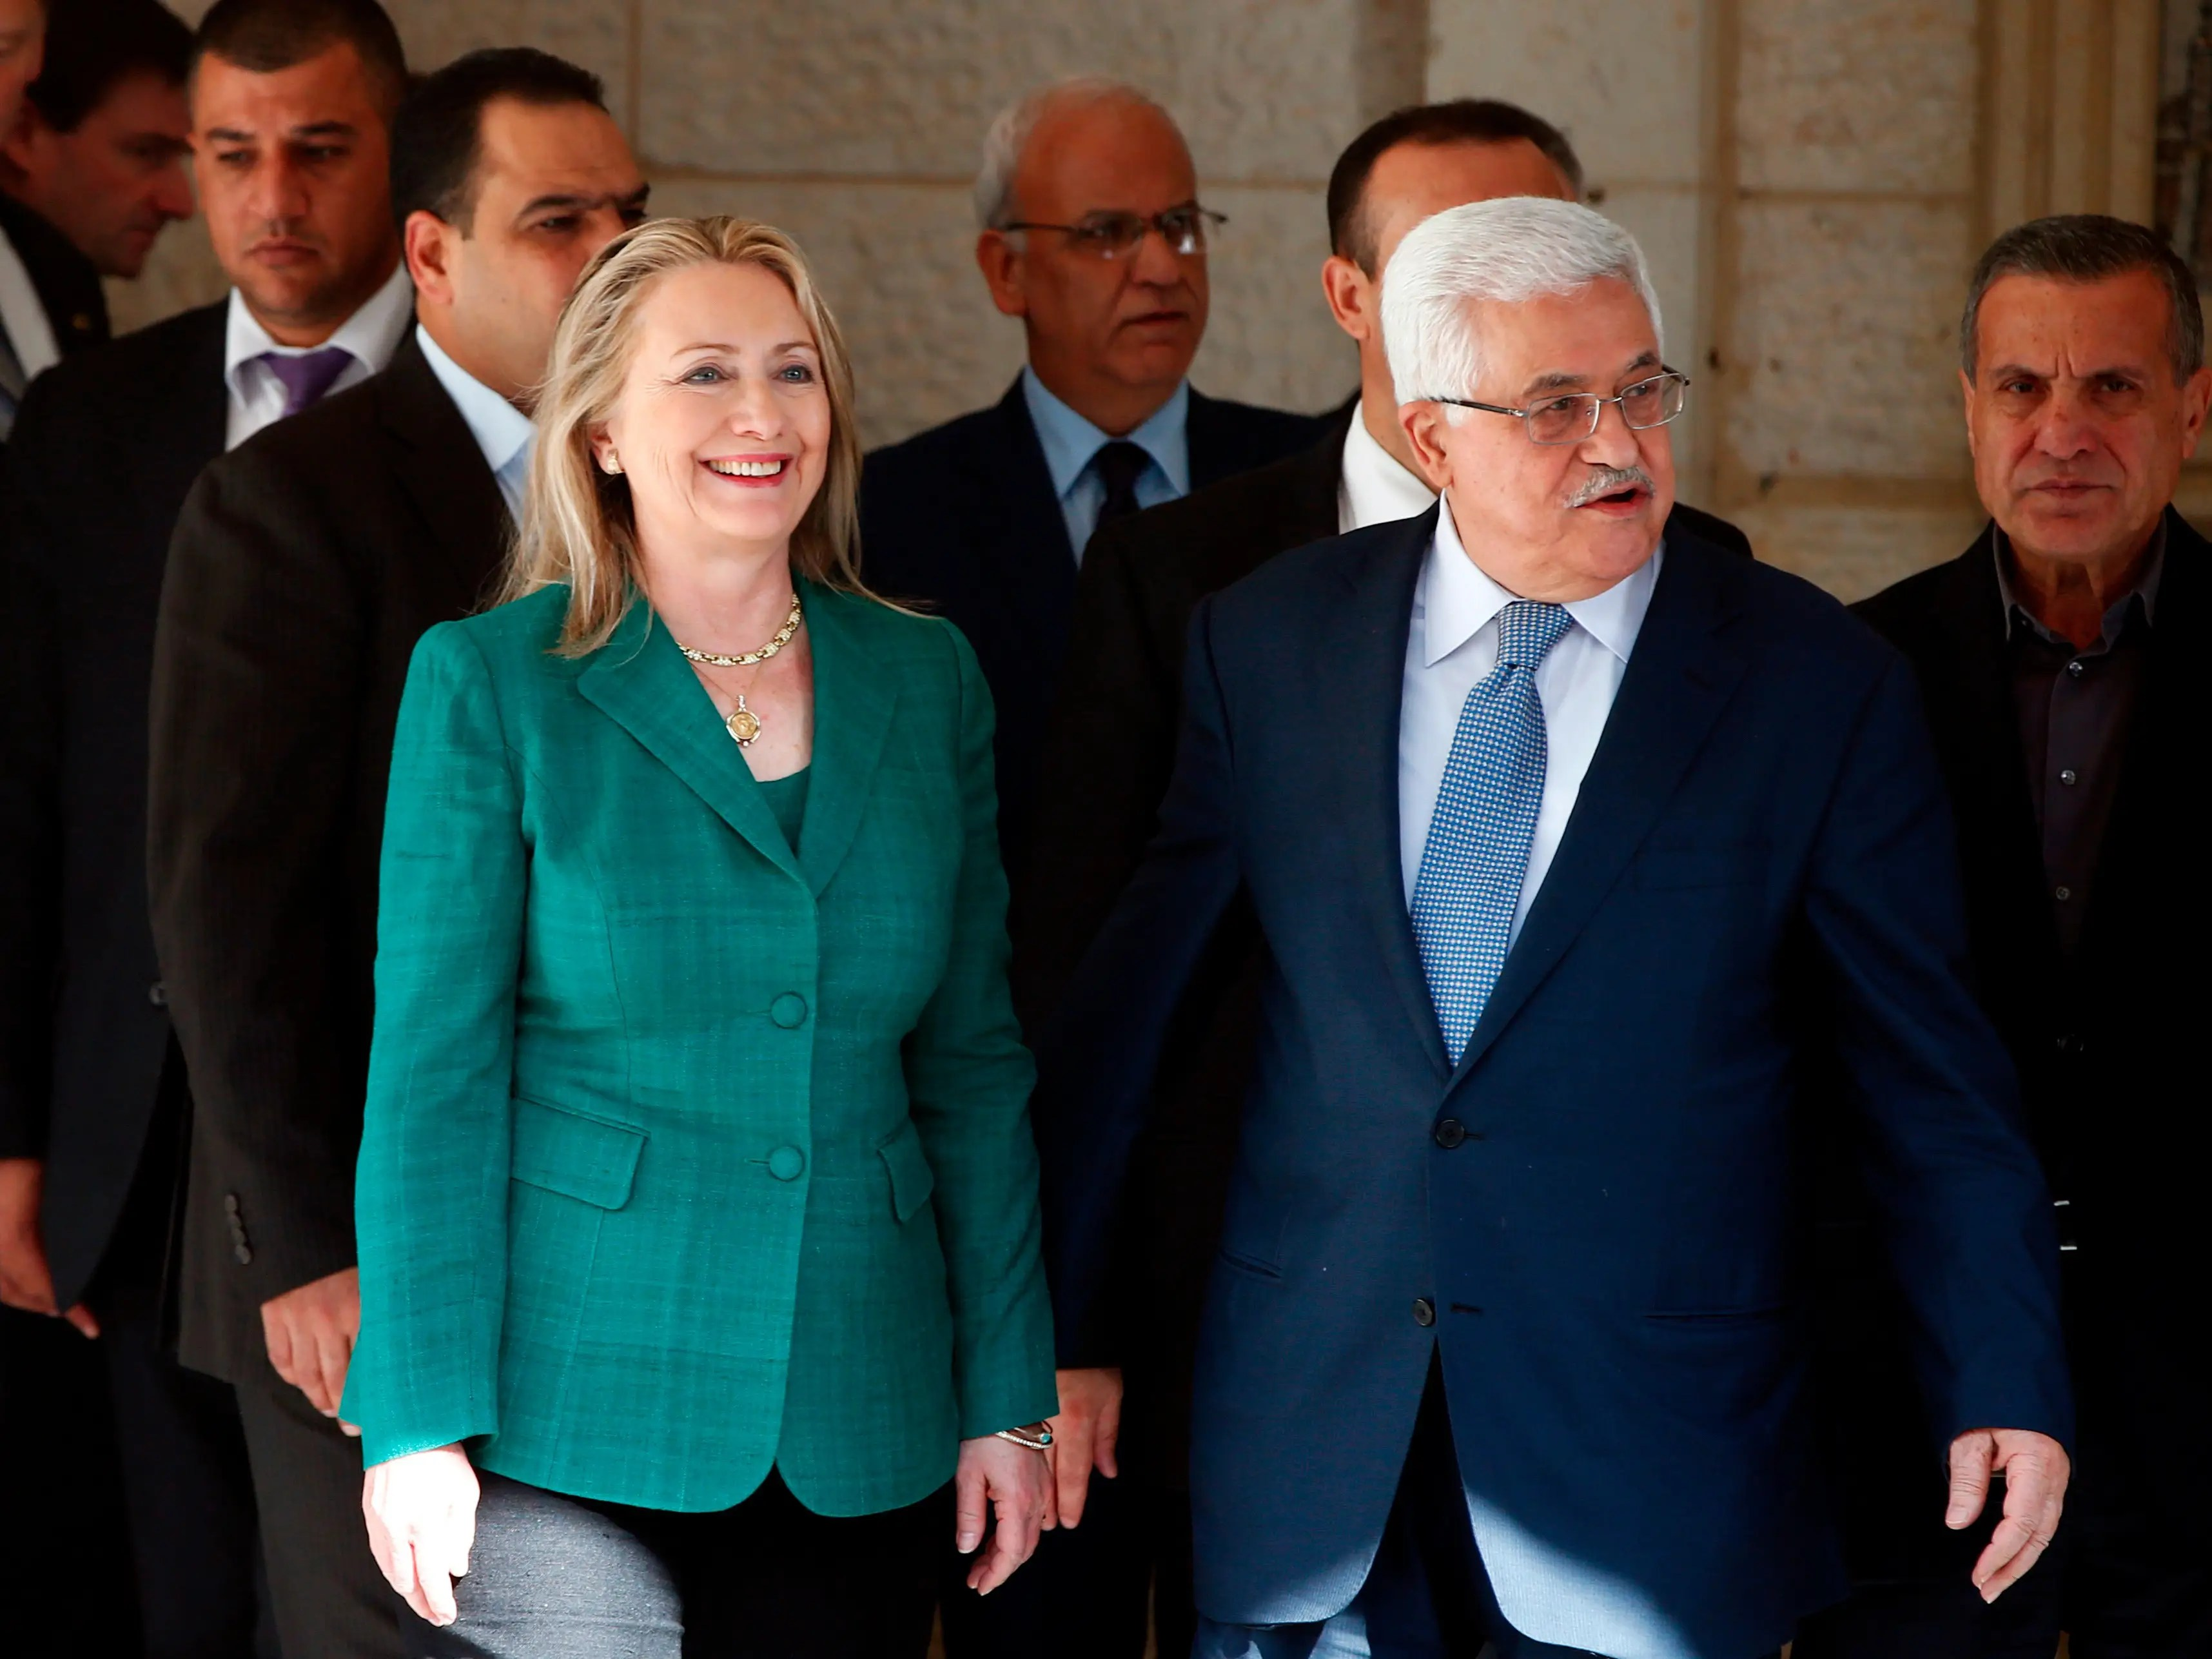 Obama dispatched Clinton to broker a ceasefire between Israel and Hamas, paving the way for peace talks.